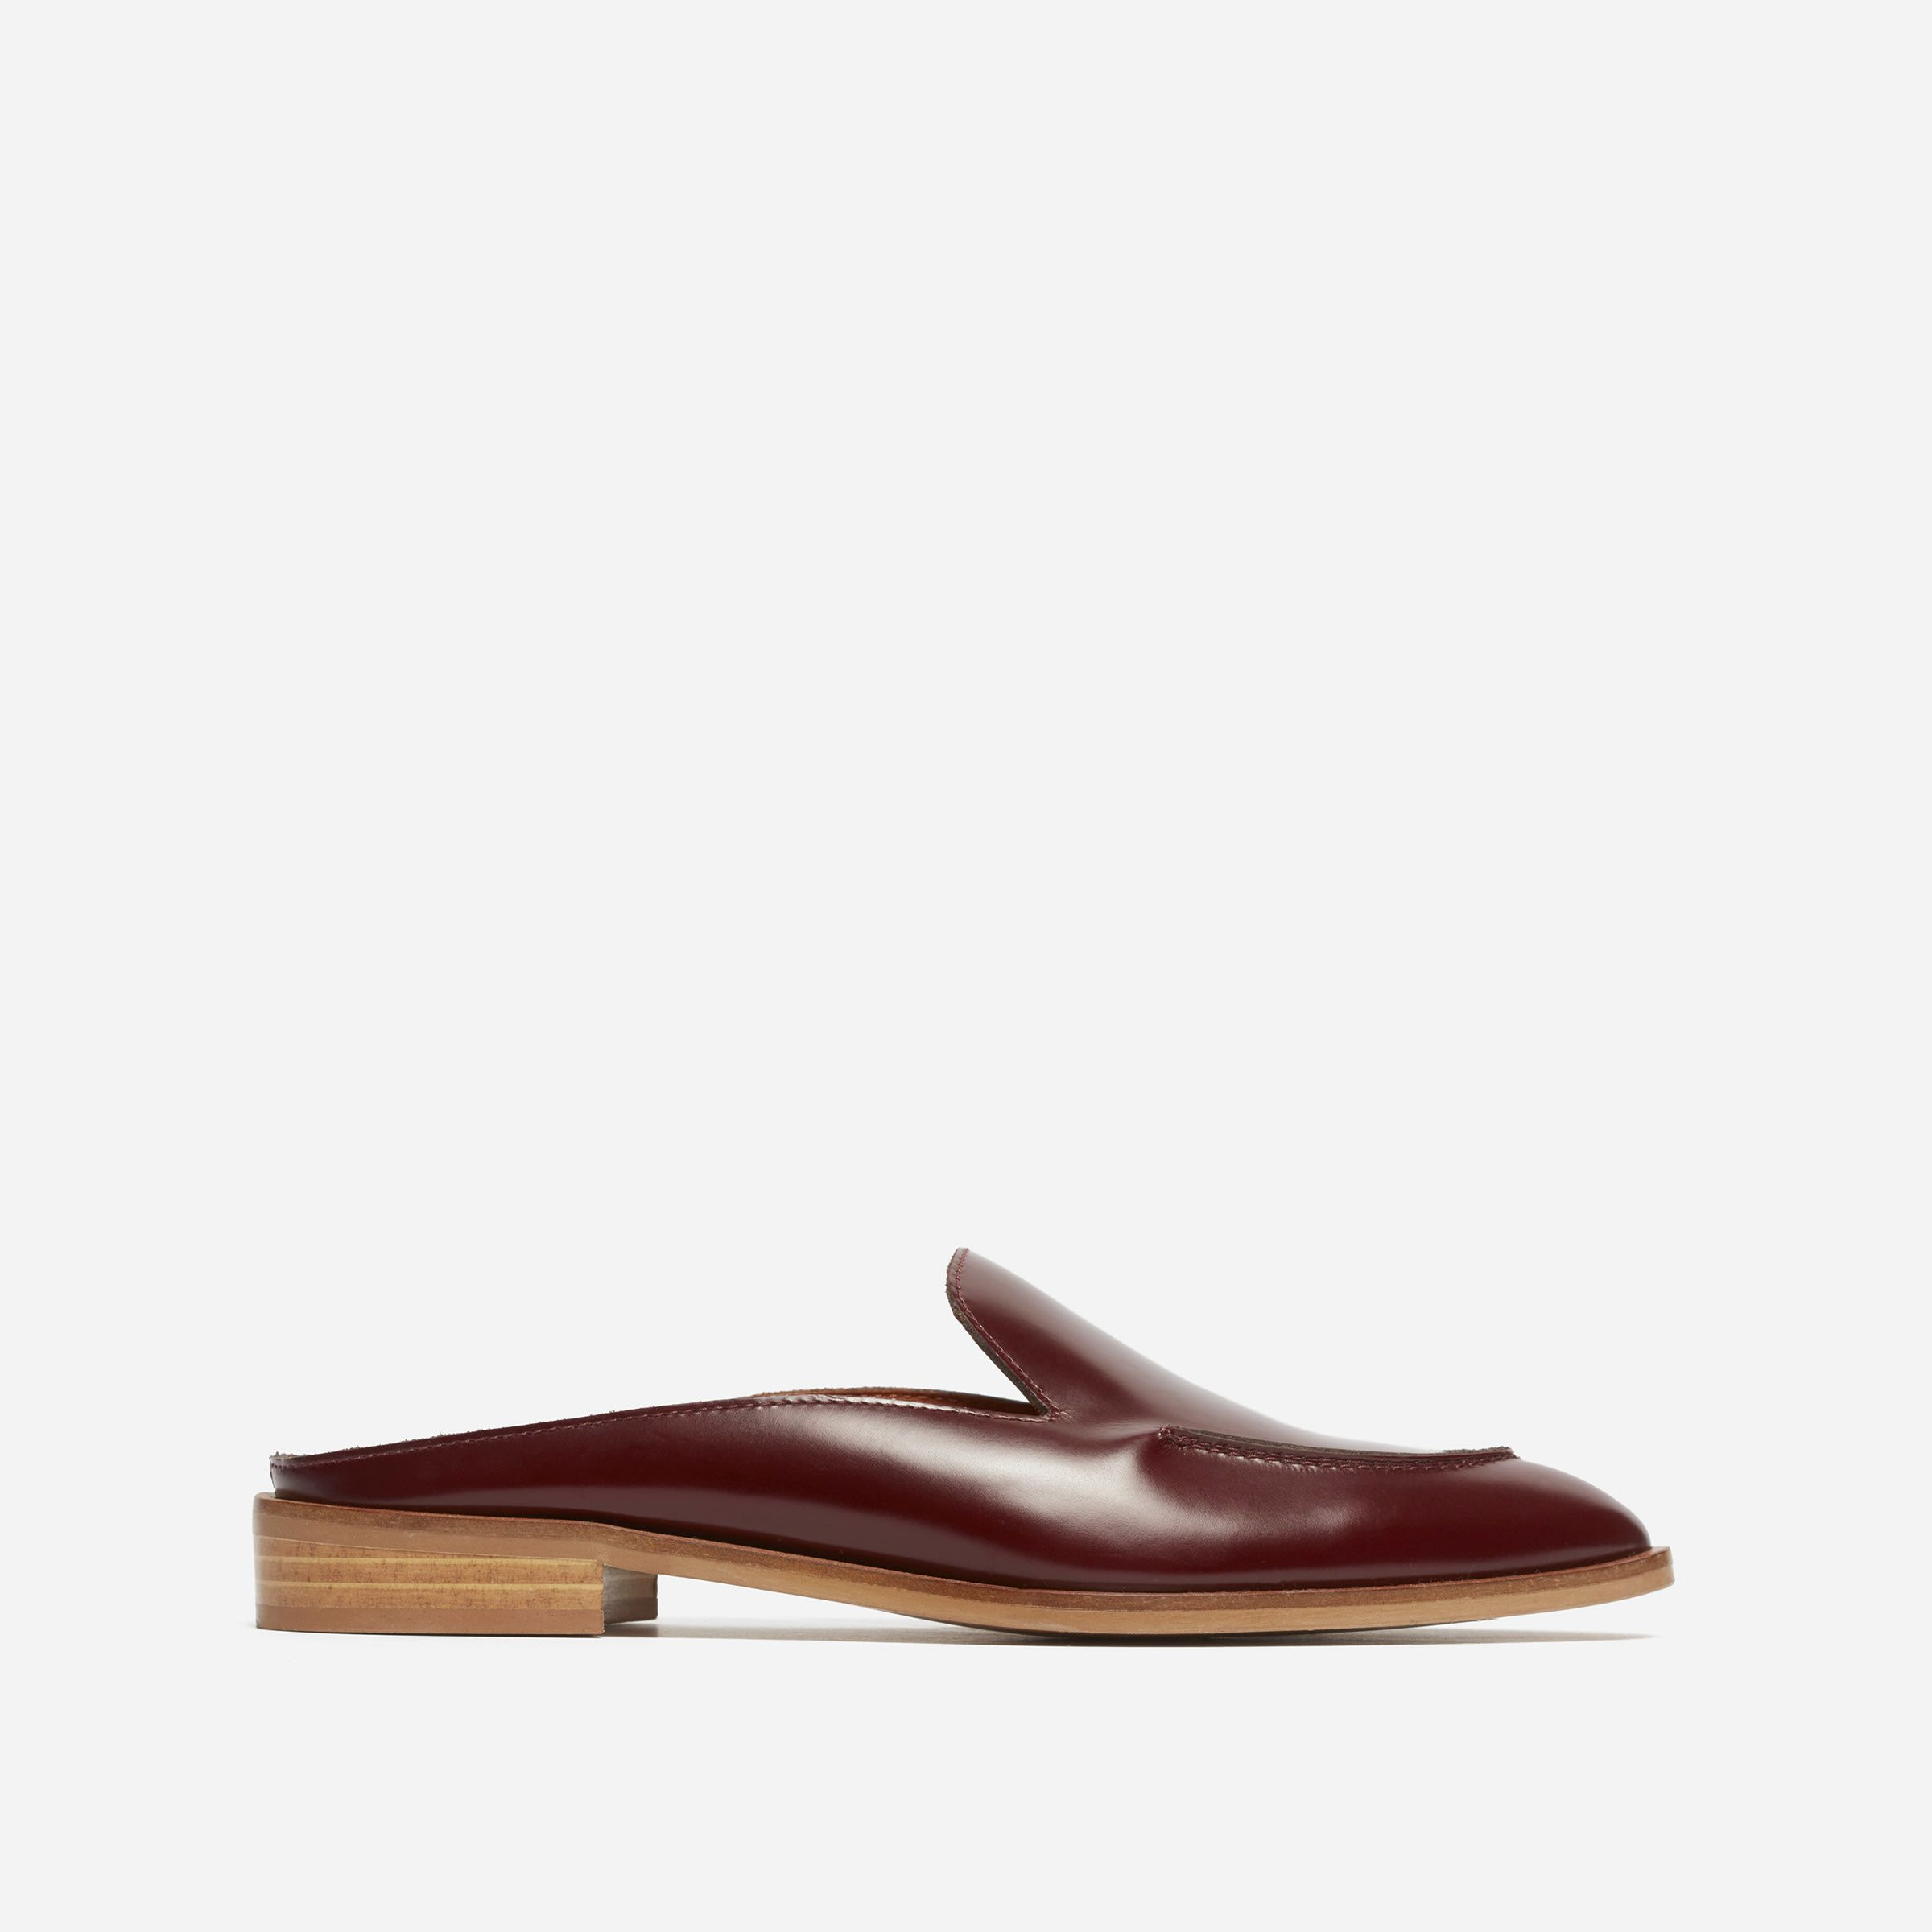 875917ab030 An easier loafer. We took our best-selling Modern Loafer and updated it in  a backless mule shape. All the polish of a classic loafer